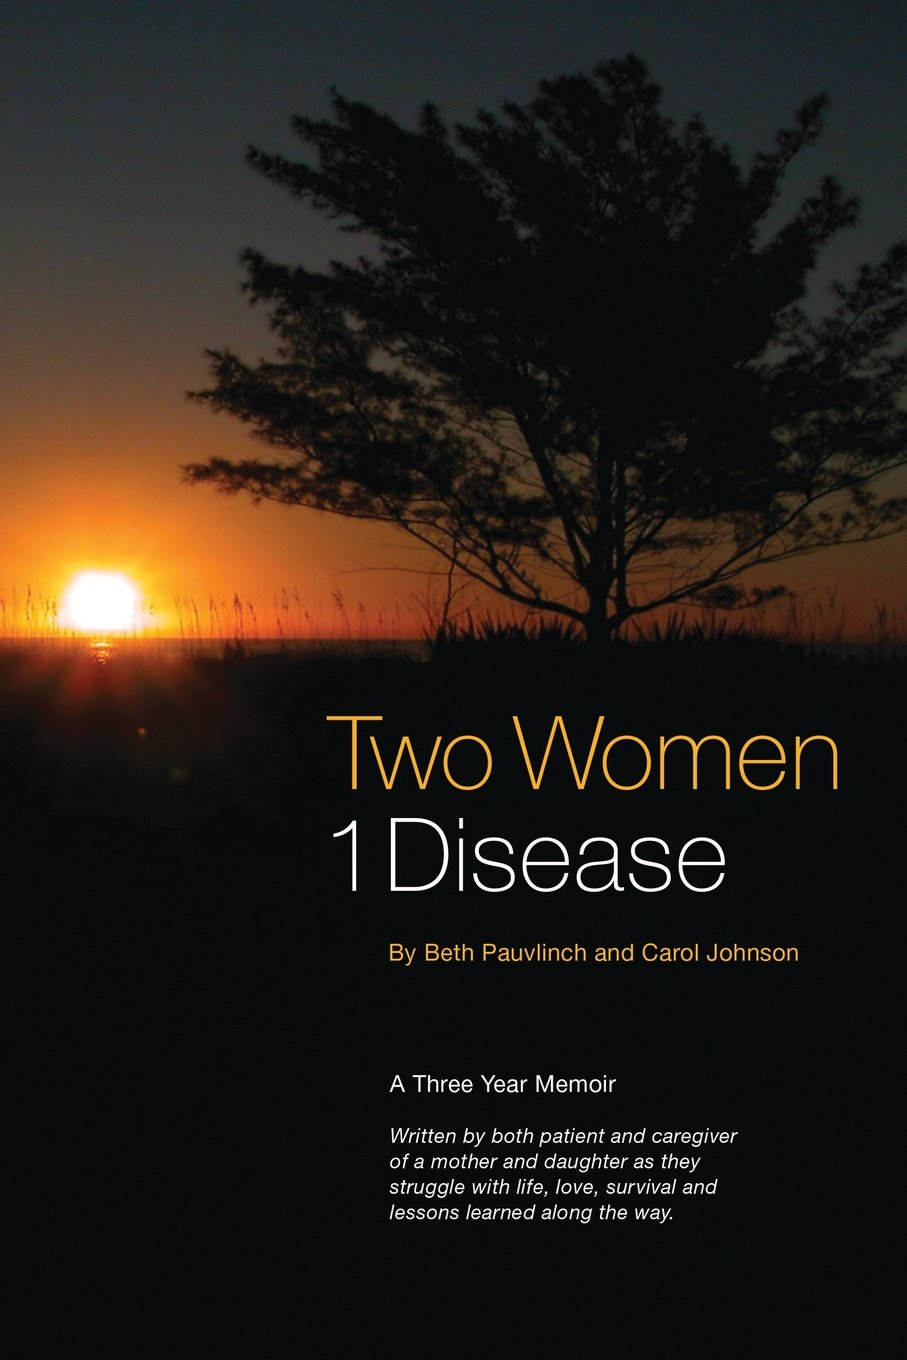 Two Women 1 Disease: A Three Year Memoir Written by Both Patient and Caregiver of a Mother and Daughter as They Struggle with Life, Love, Survival and Lessons Learned Along the Way. pdf